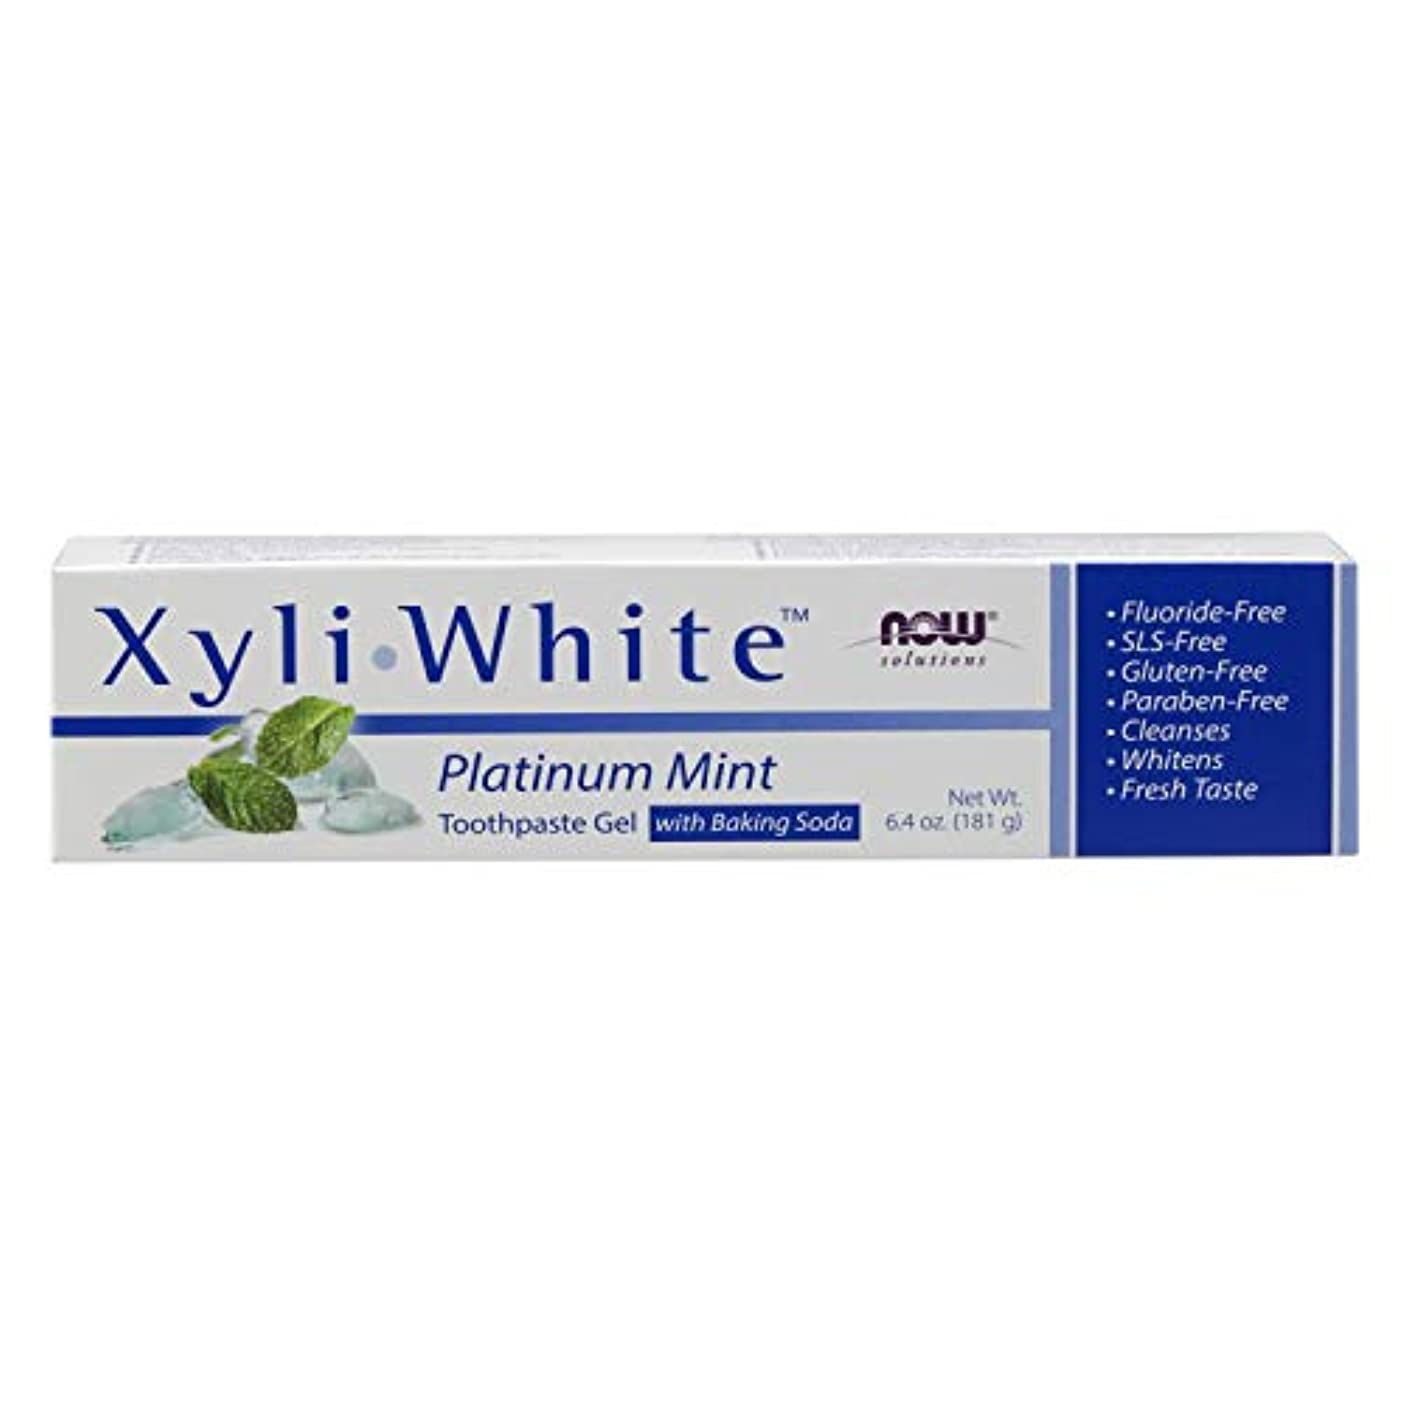 コーンコーン外部海外直送品 Now Foods Xyliwhite Platinum Mint with Baking Soda Toothpaste, 6.4 Oz